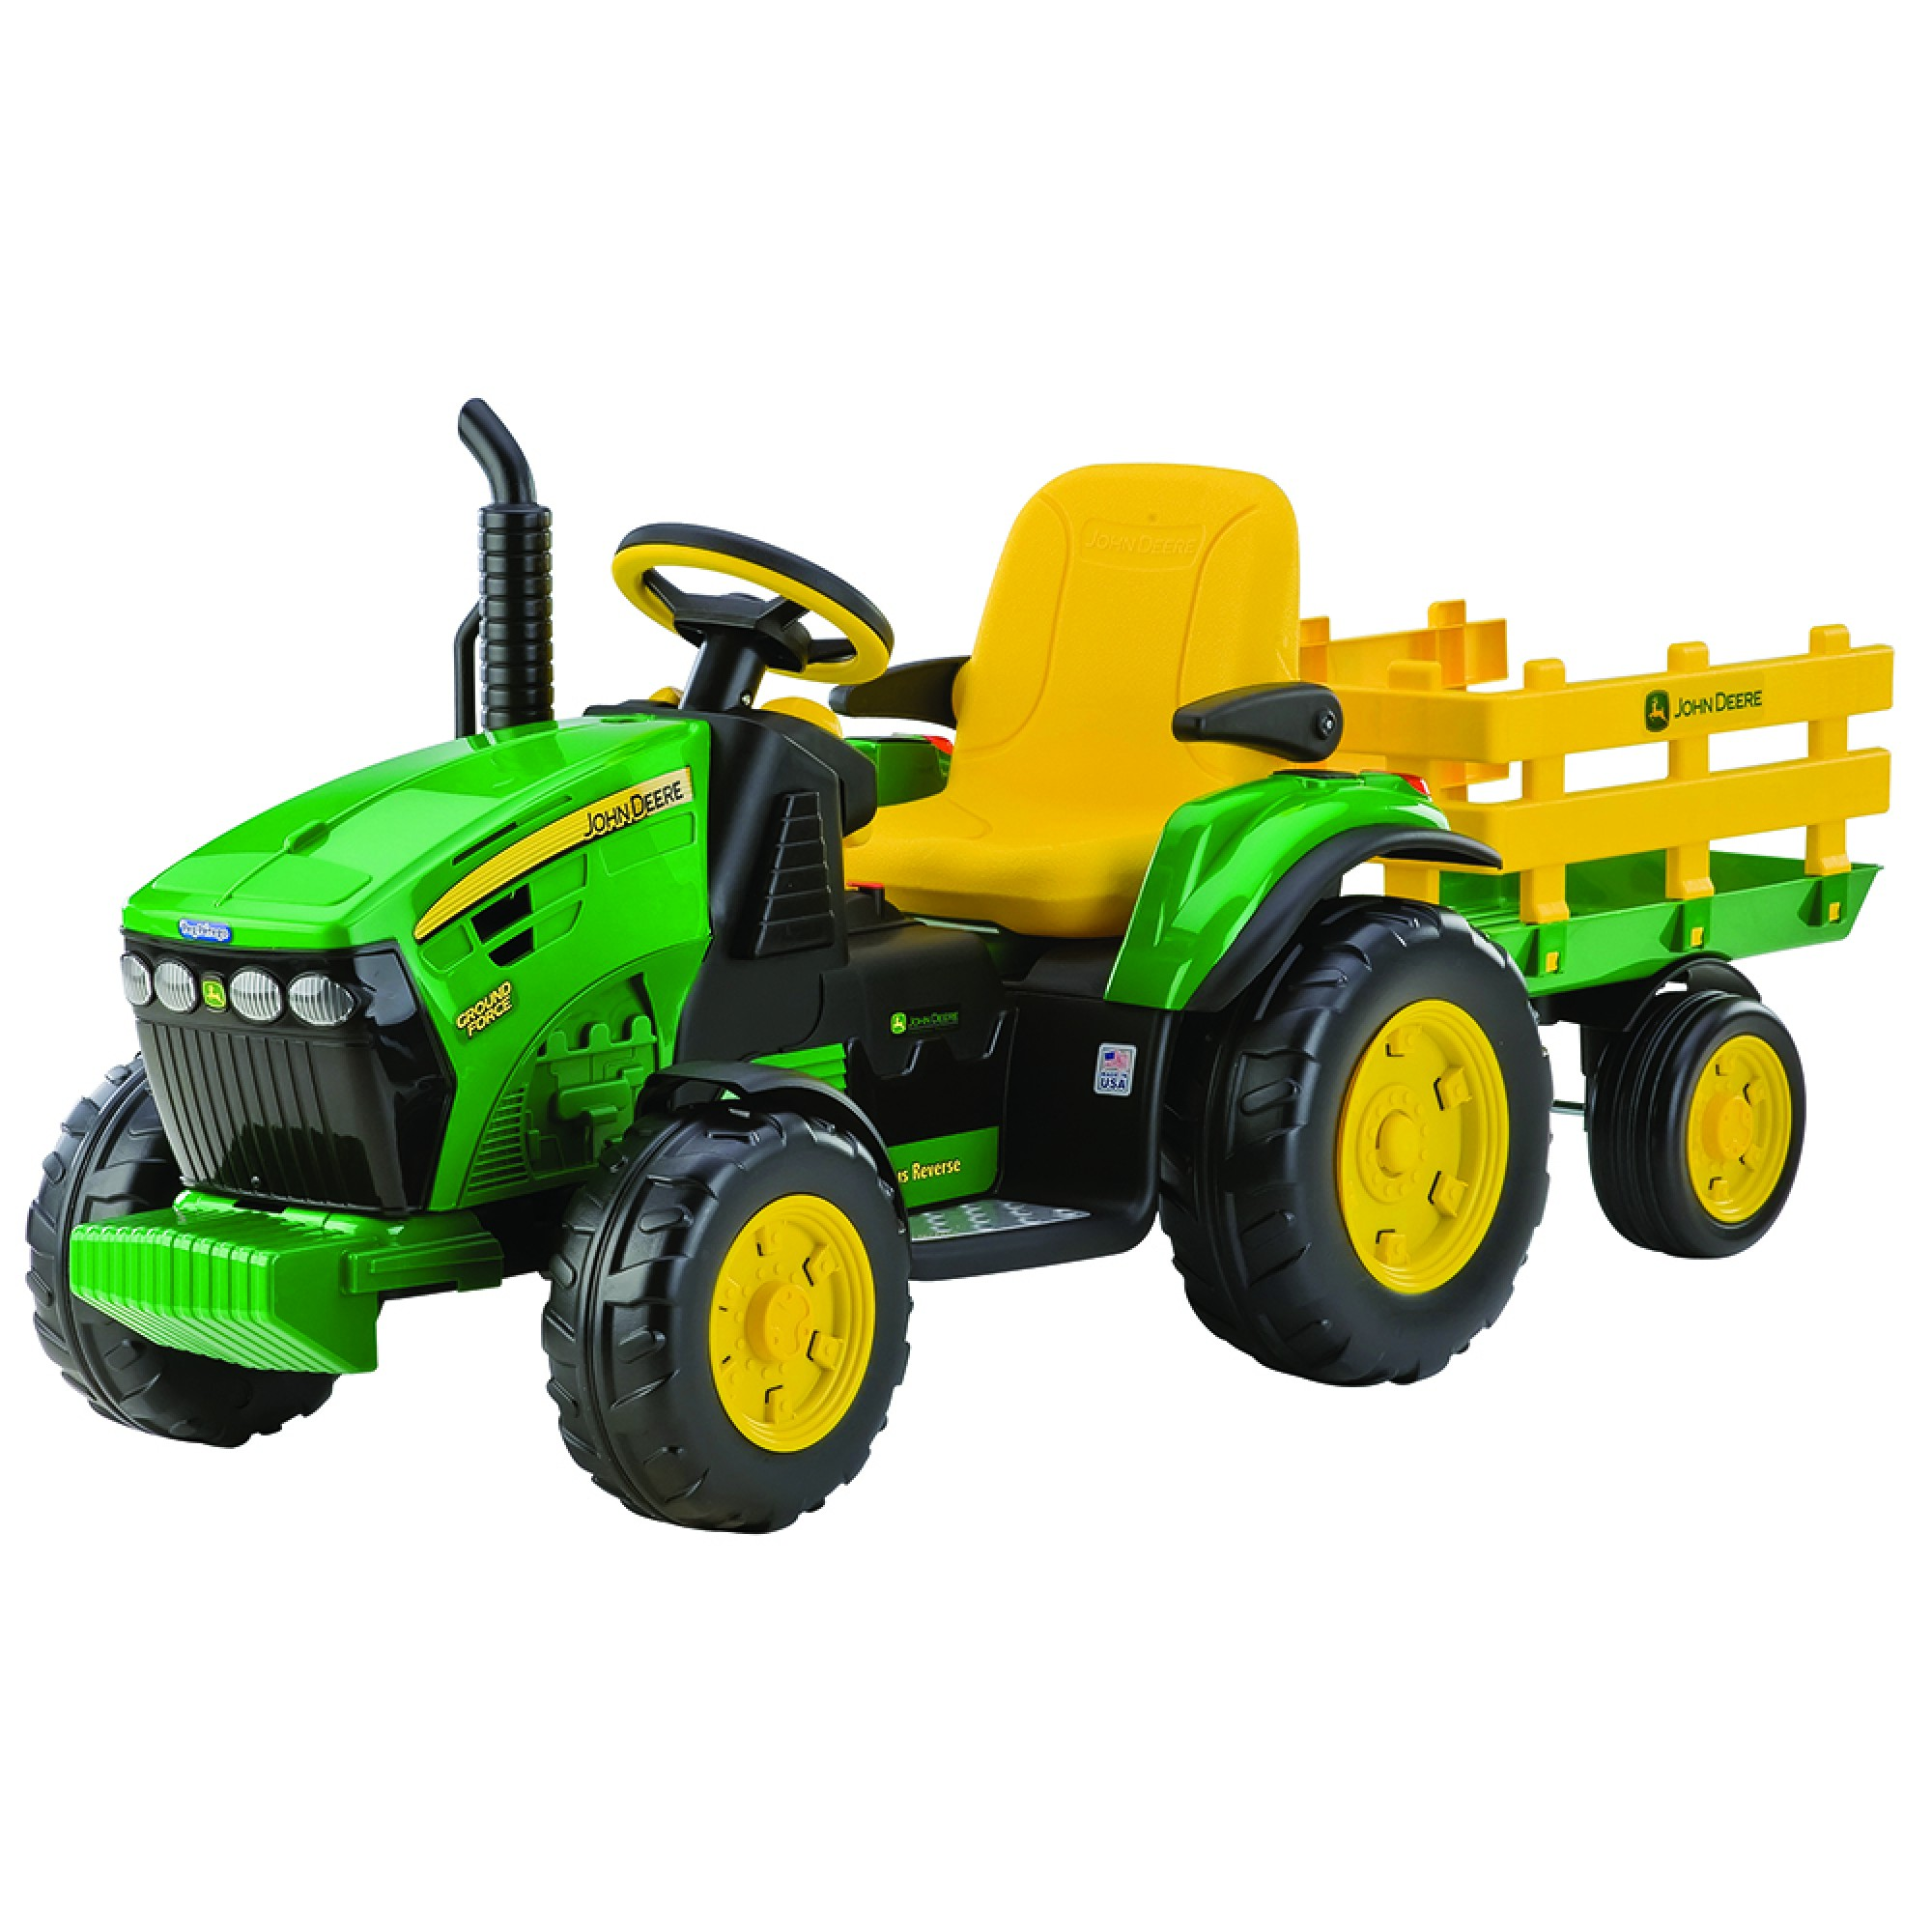 Tractor, JD Ground Force, Peg Perego, w/trailer